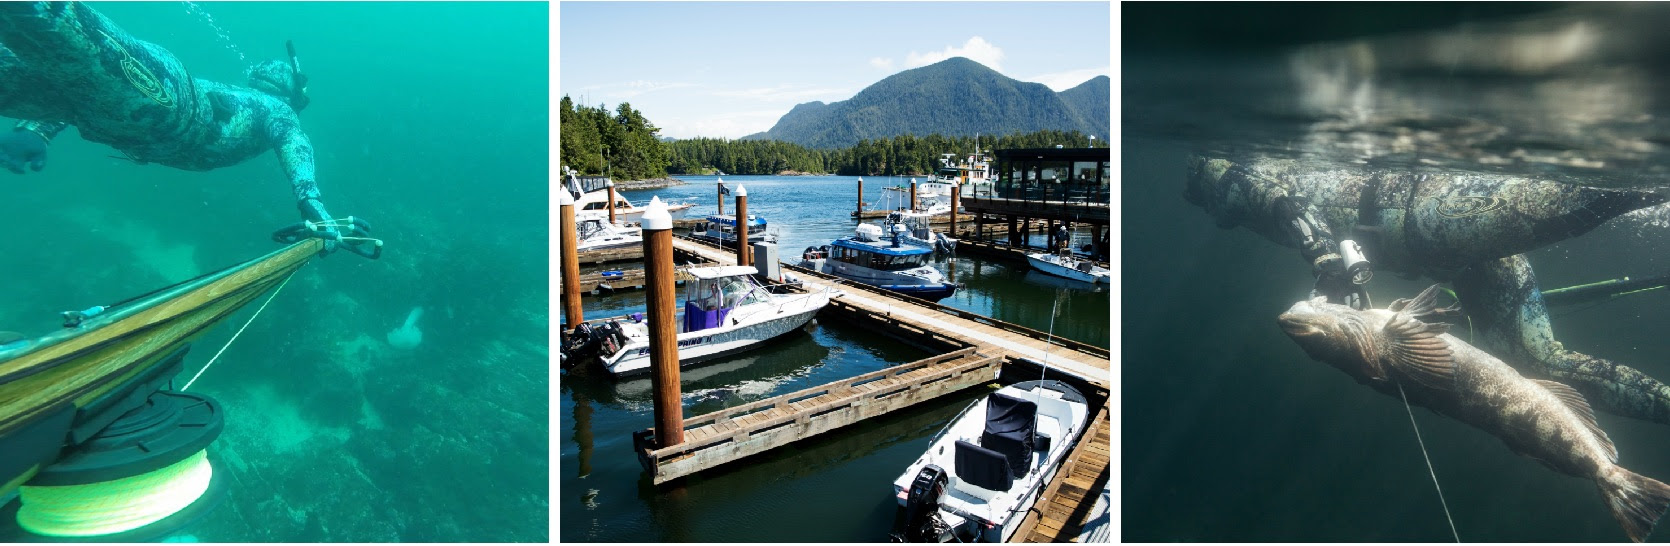 Tide to Table: Tofino Resort + Marina offers guests the fundamentals of freediving and marine-harvesting